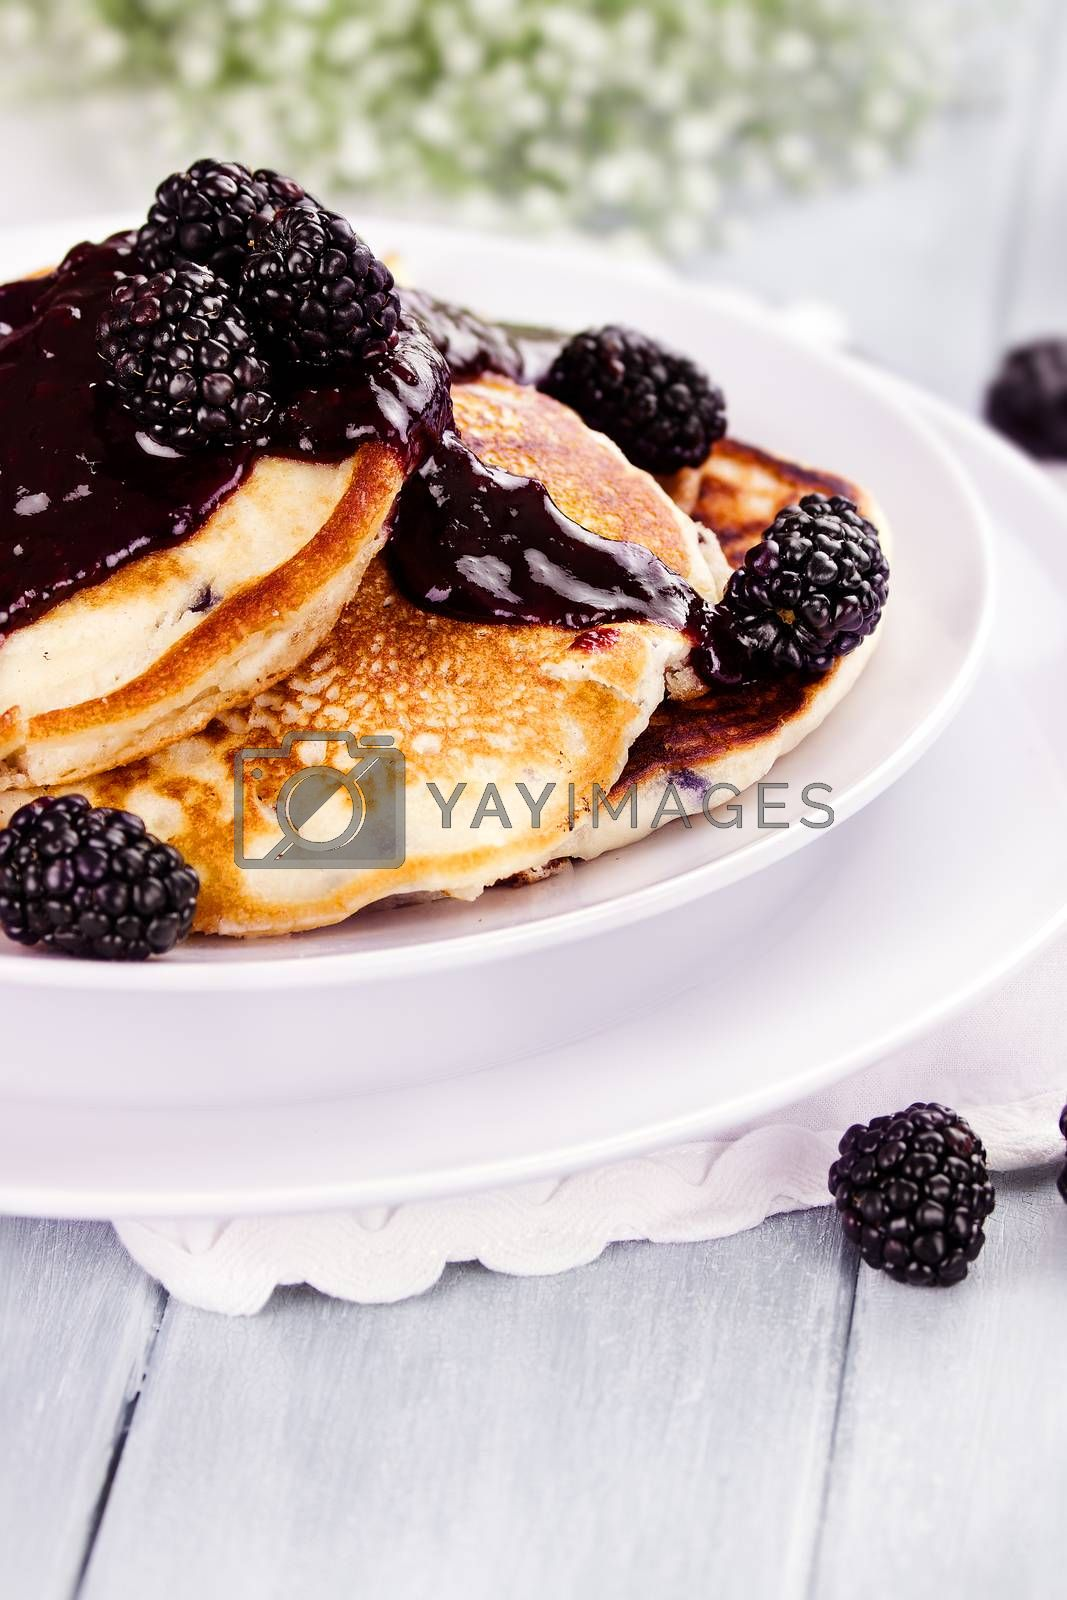 Royalty free image of Pancakes and Blackberry Sauce by StephanieFrey